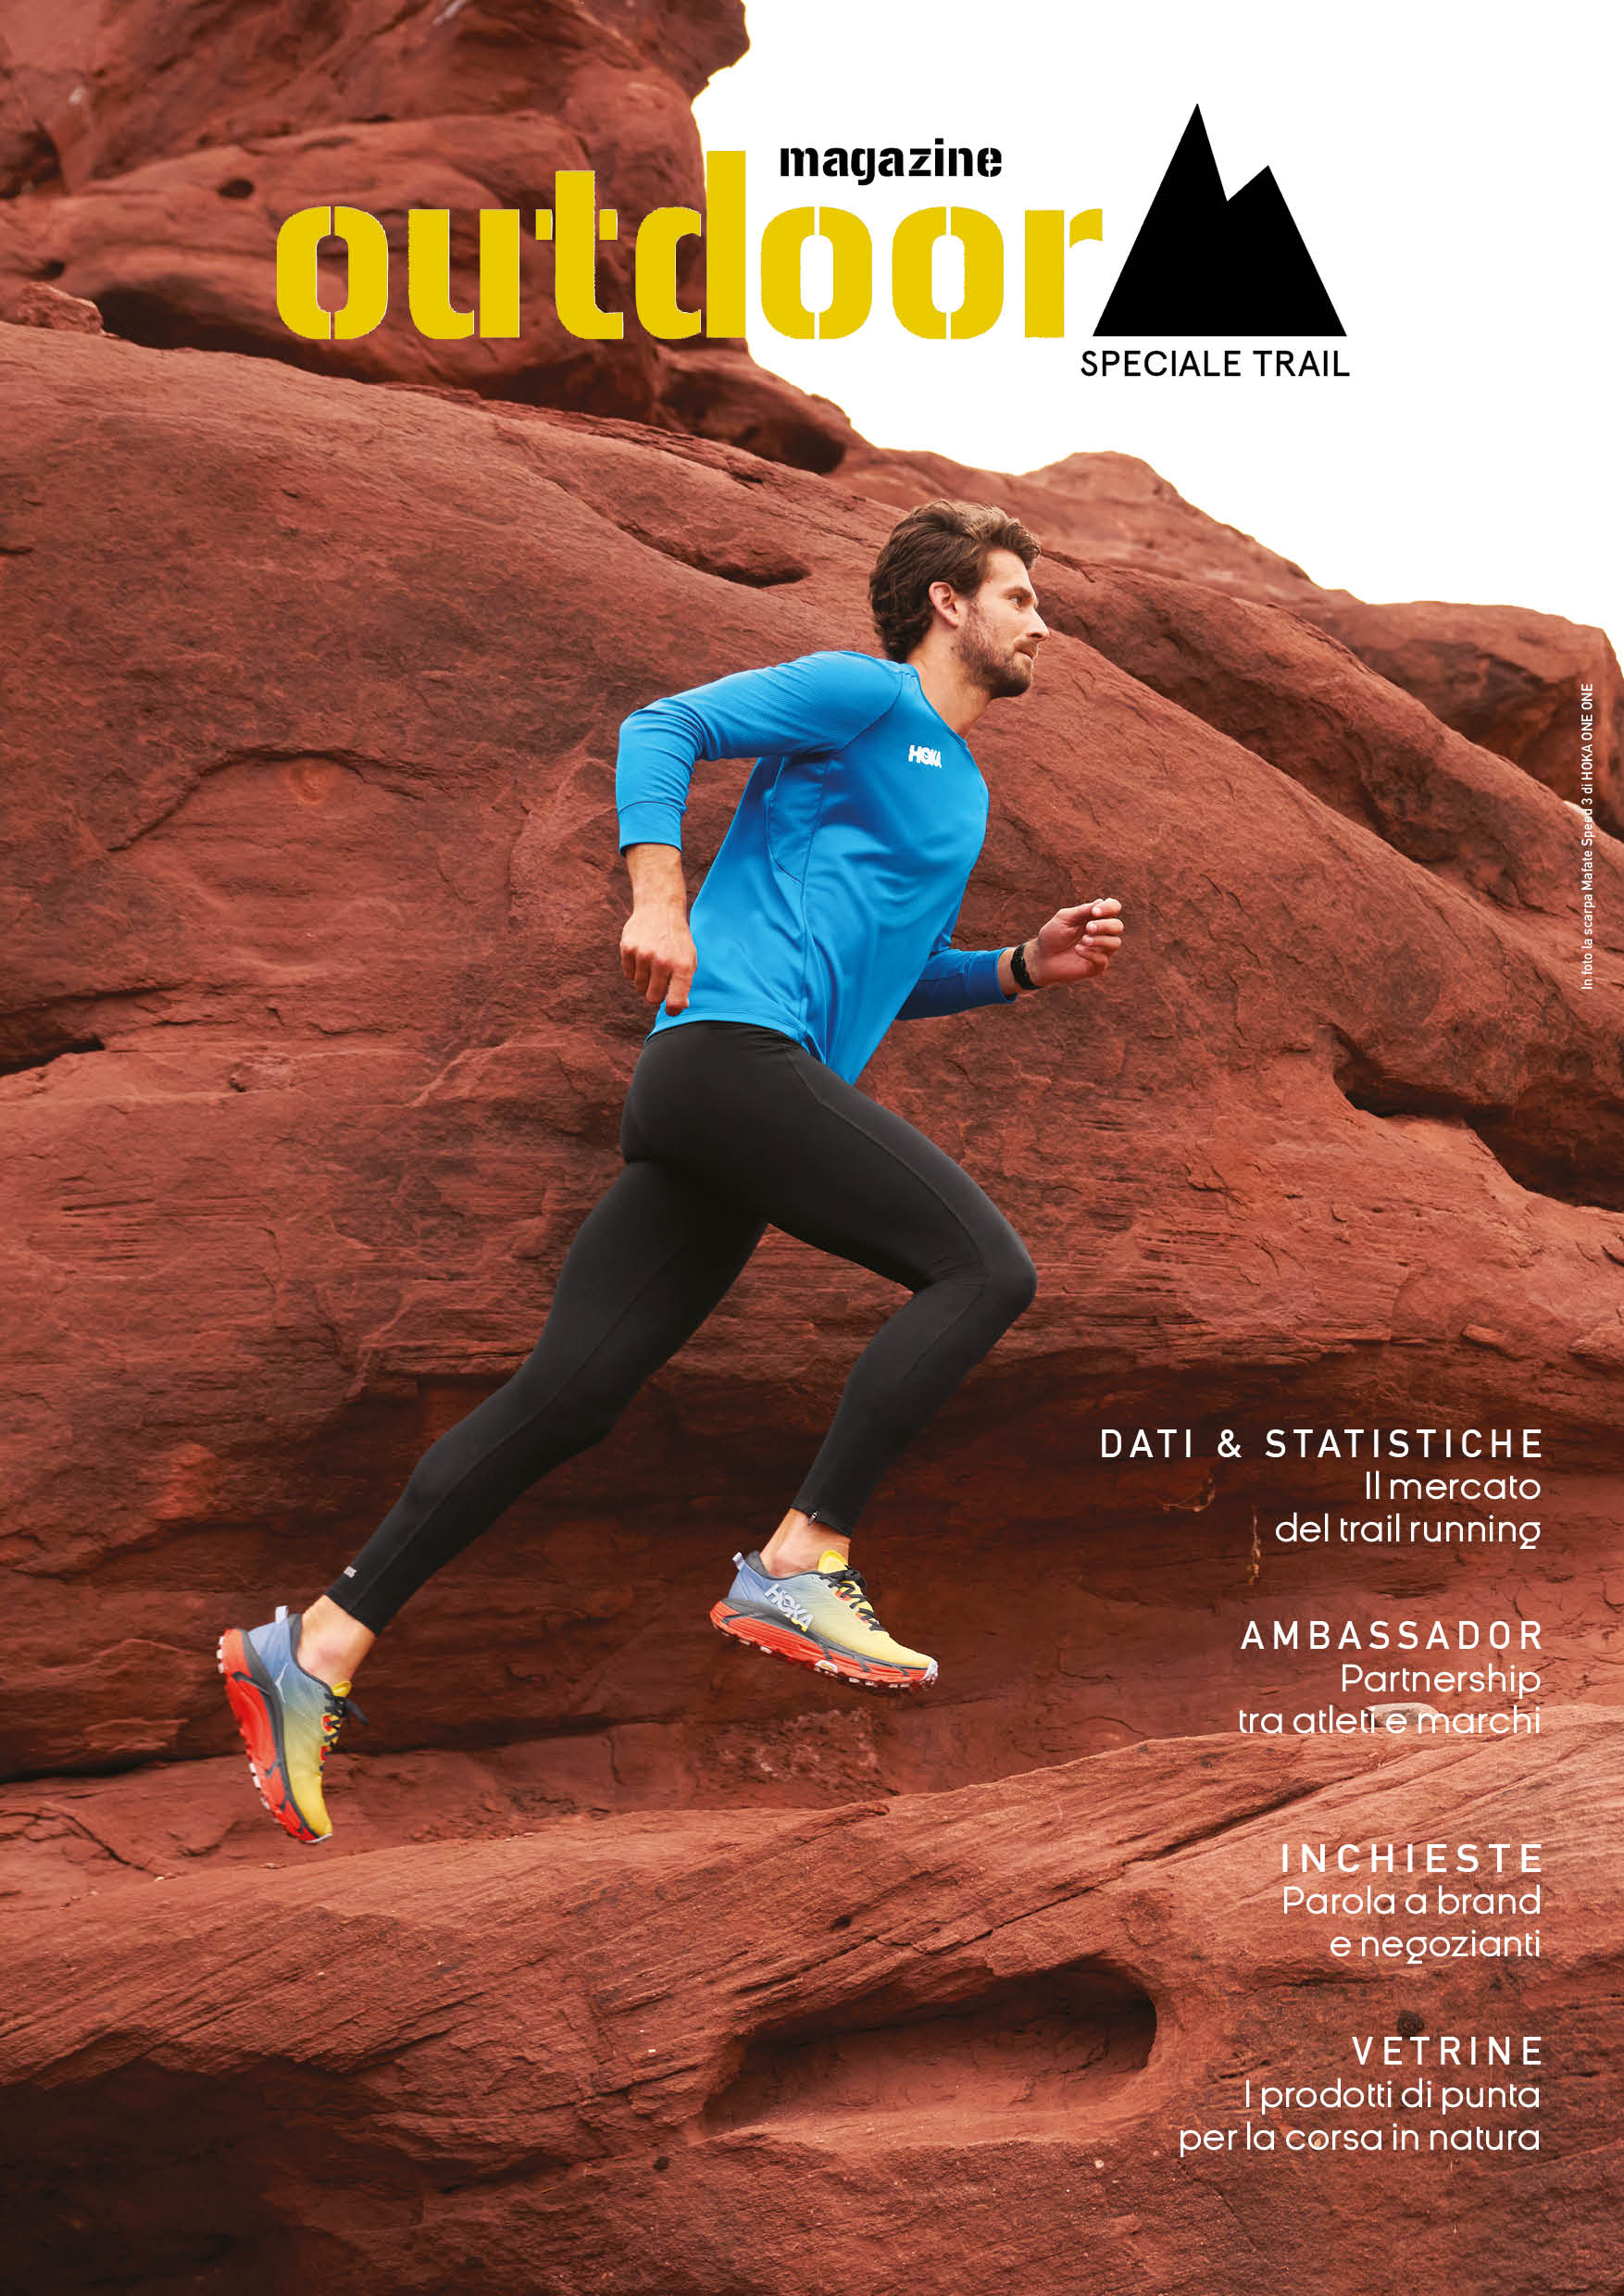 Outdoor Magazine / Speciale Trail